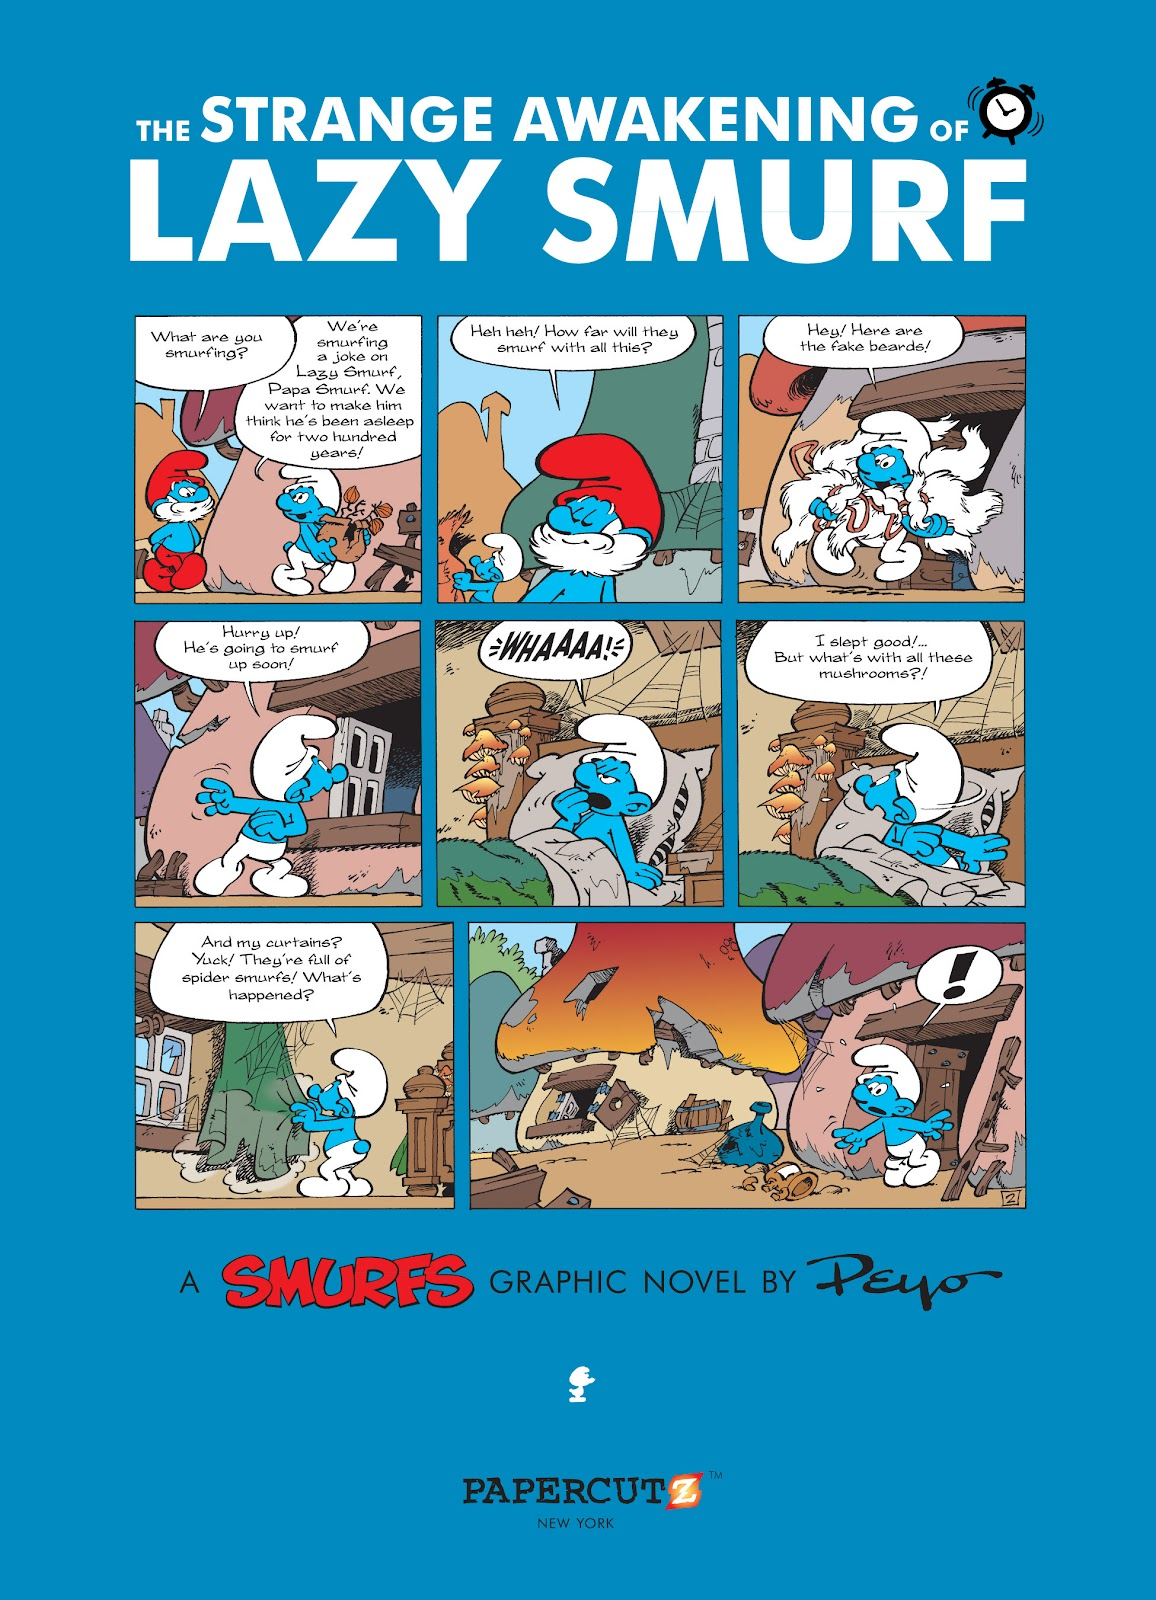 Read online The Smurfs comic -  Issue #17 - 3